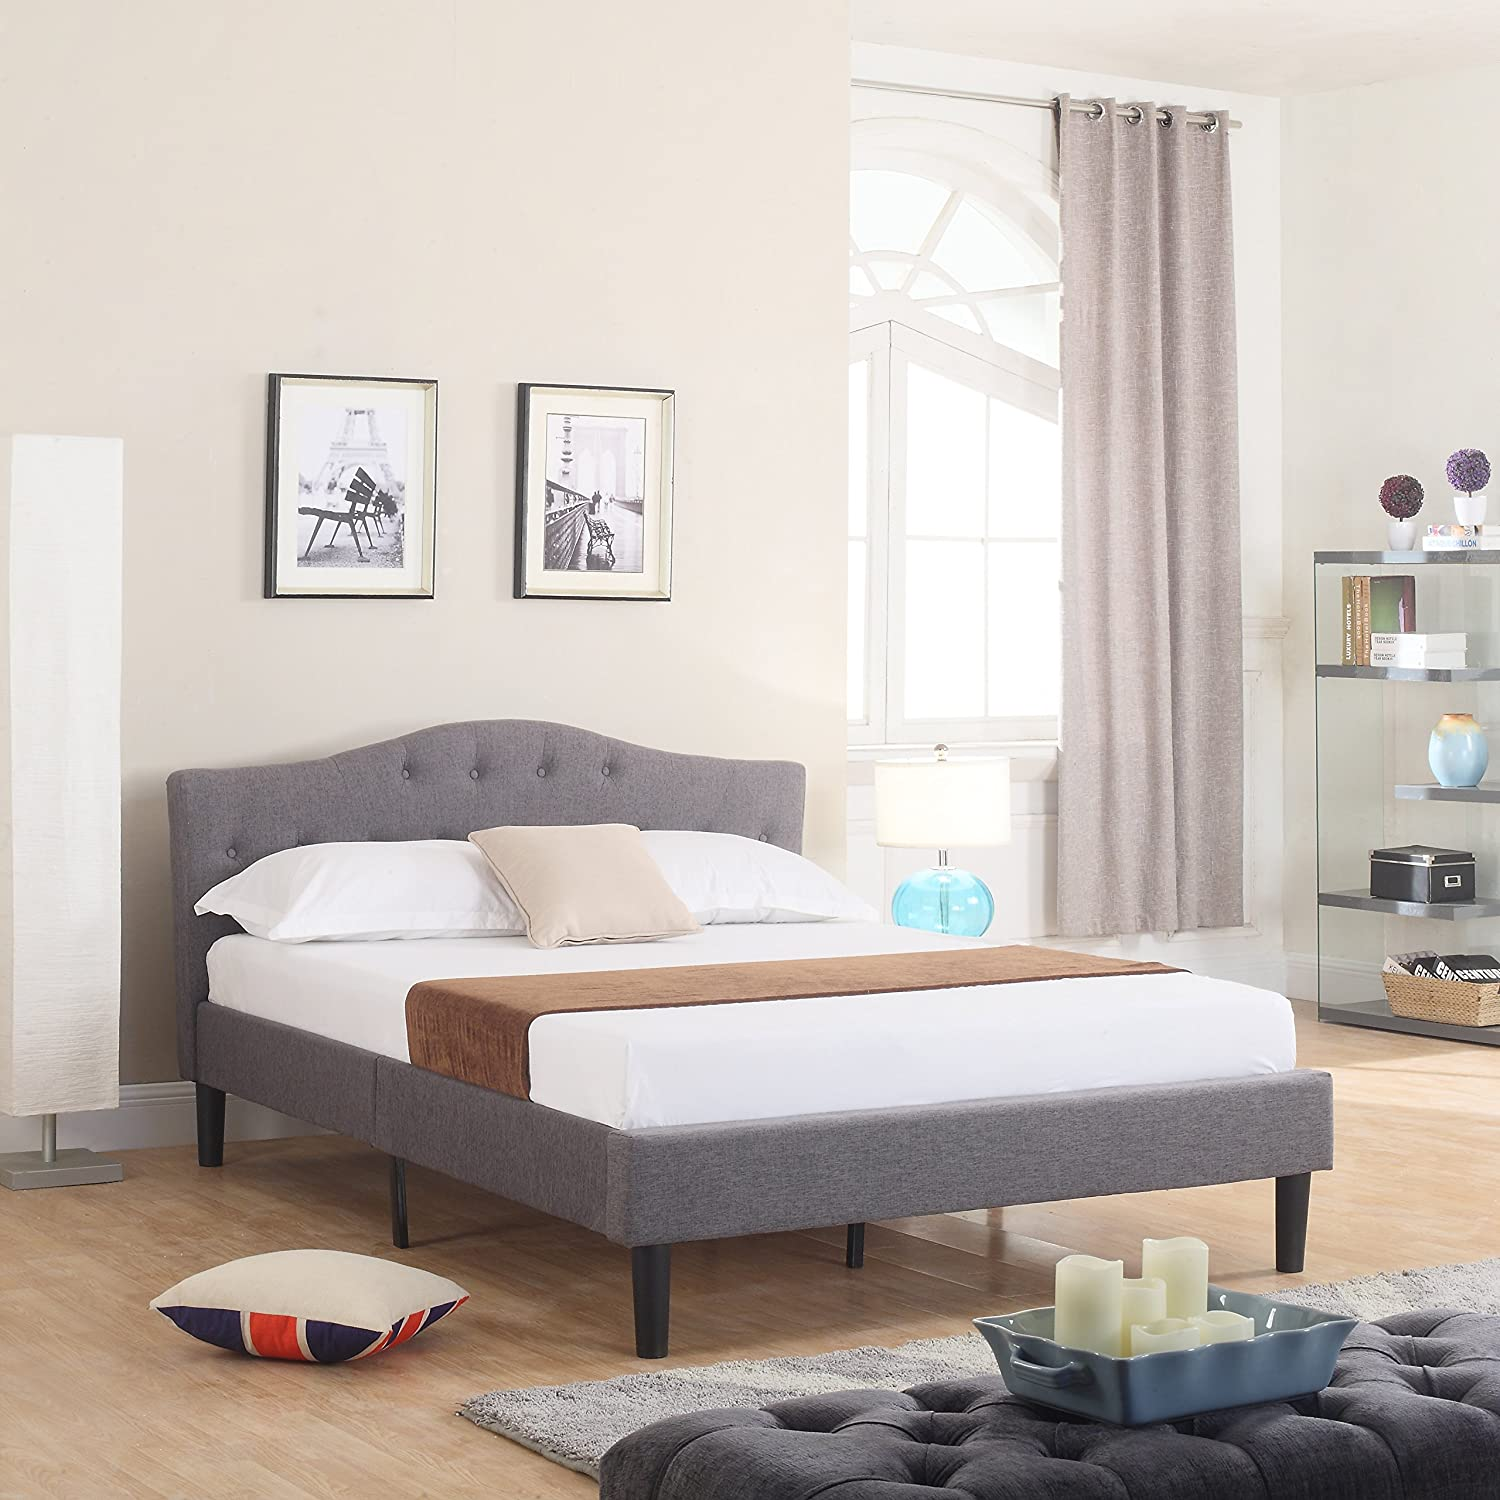 DIVANO ROMA FURNITURE Full Tall Size Upholstered Platform Bed Frame and Tufted Panel Headboard with Mattress Foundation and Solid Wood Slat Bed Support, No Box Spring Needed - Box Replacement